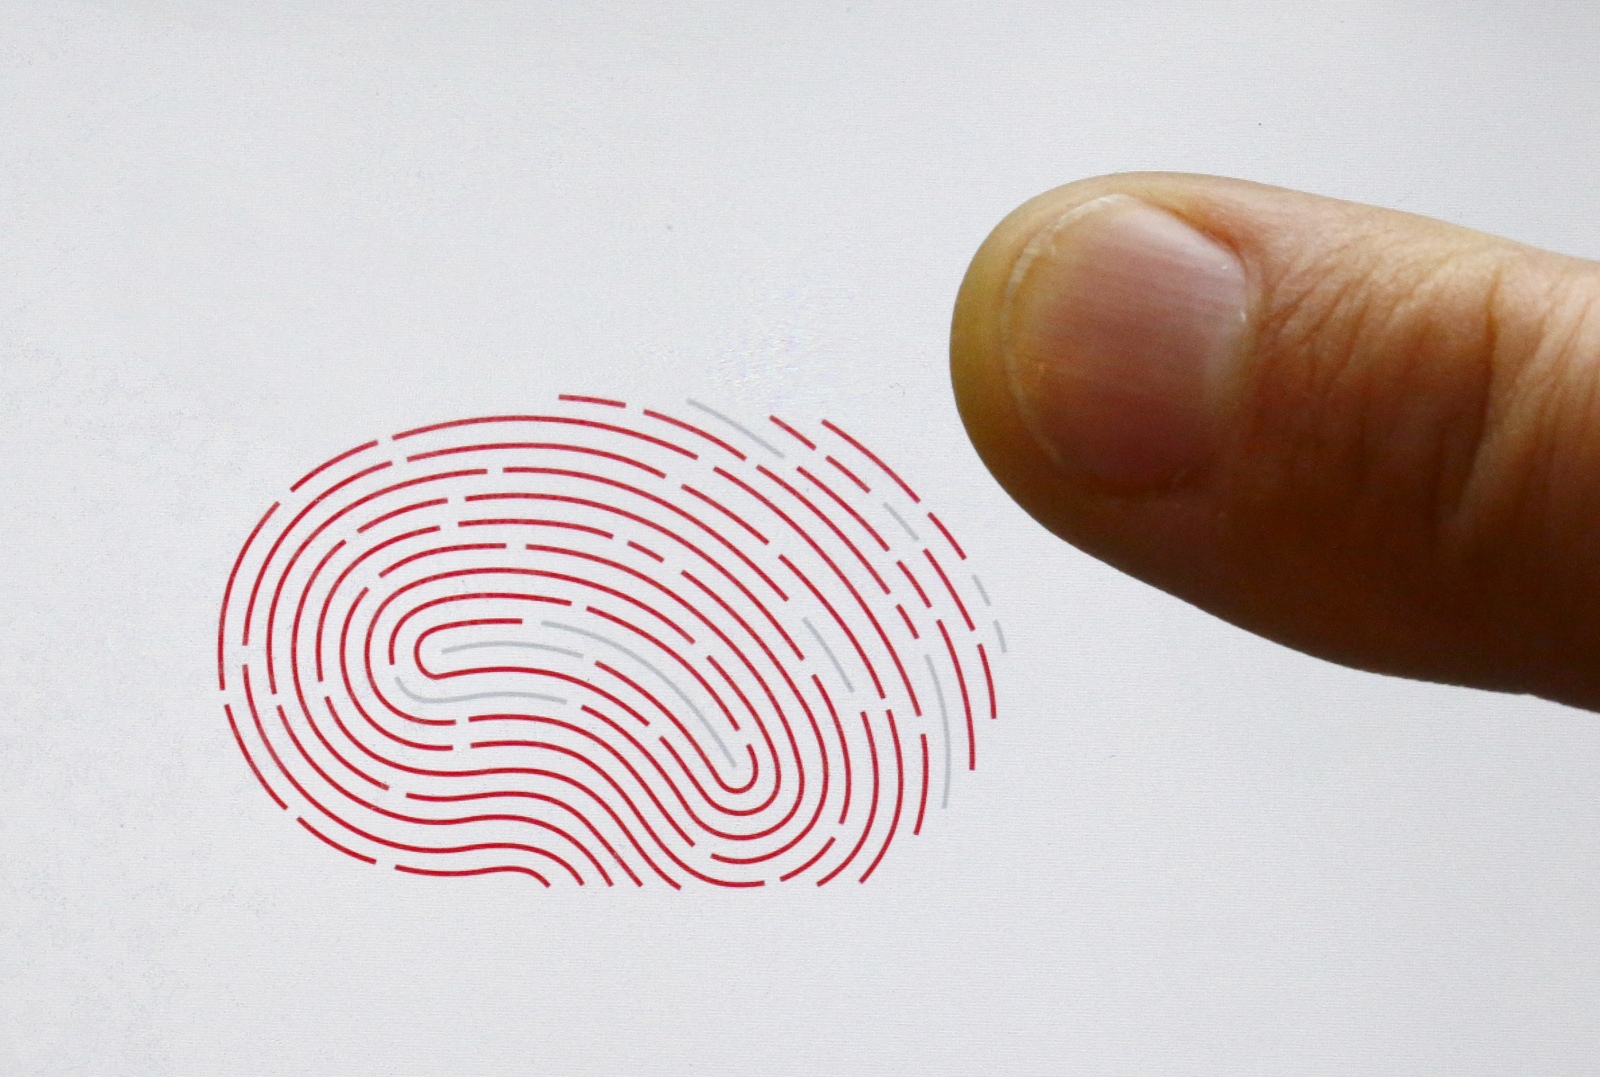 Britons trust banks over government agencies to store their biometric information such as fingerprints and iris scans